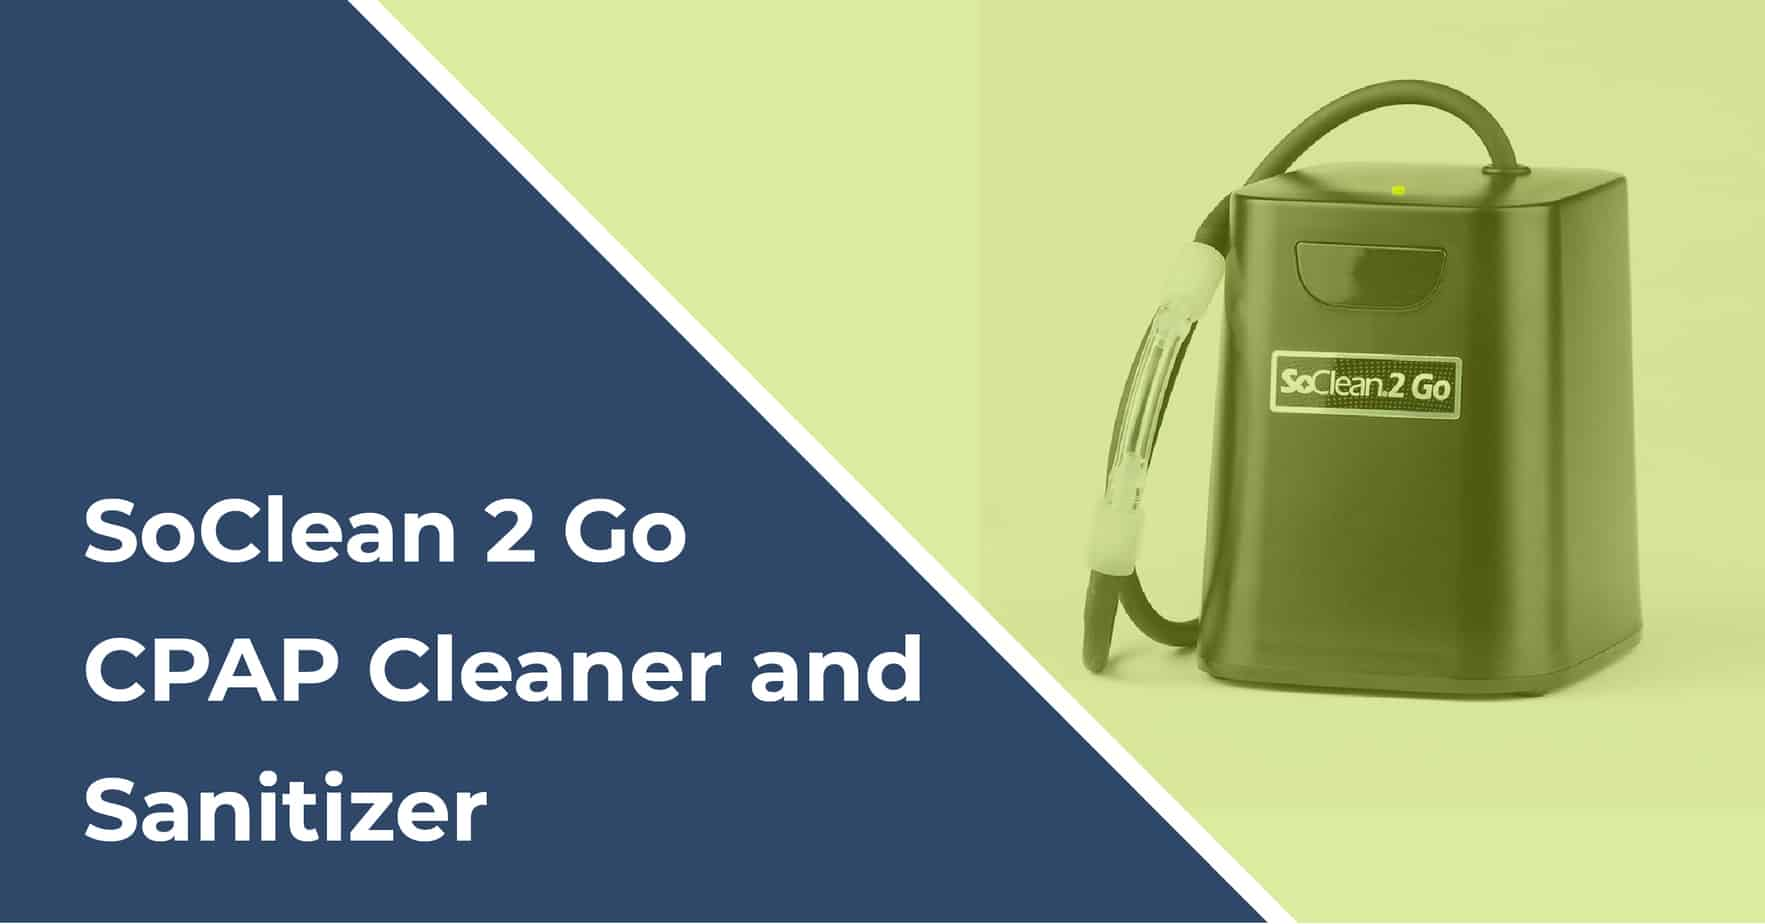 soclean 2 go cpap cleaner and sanitizer